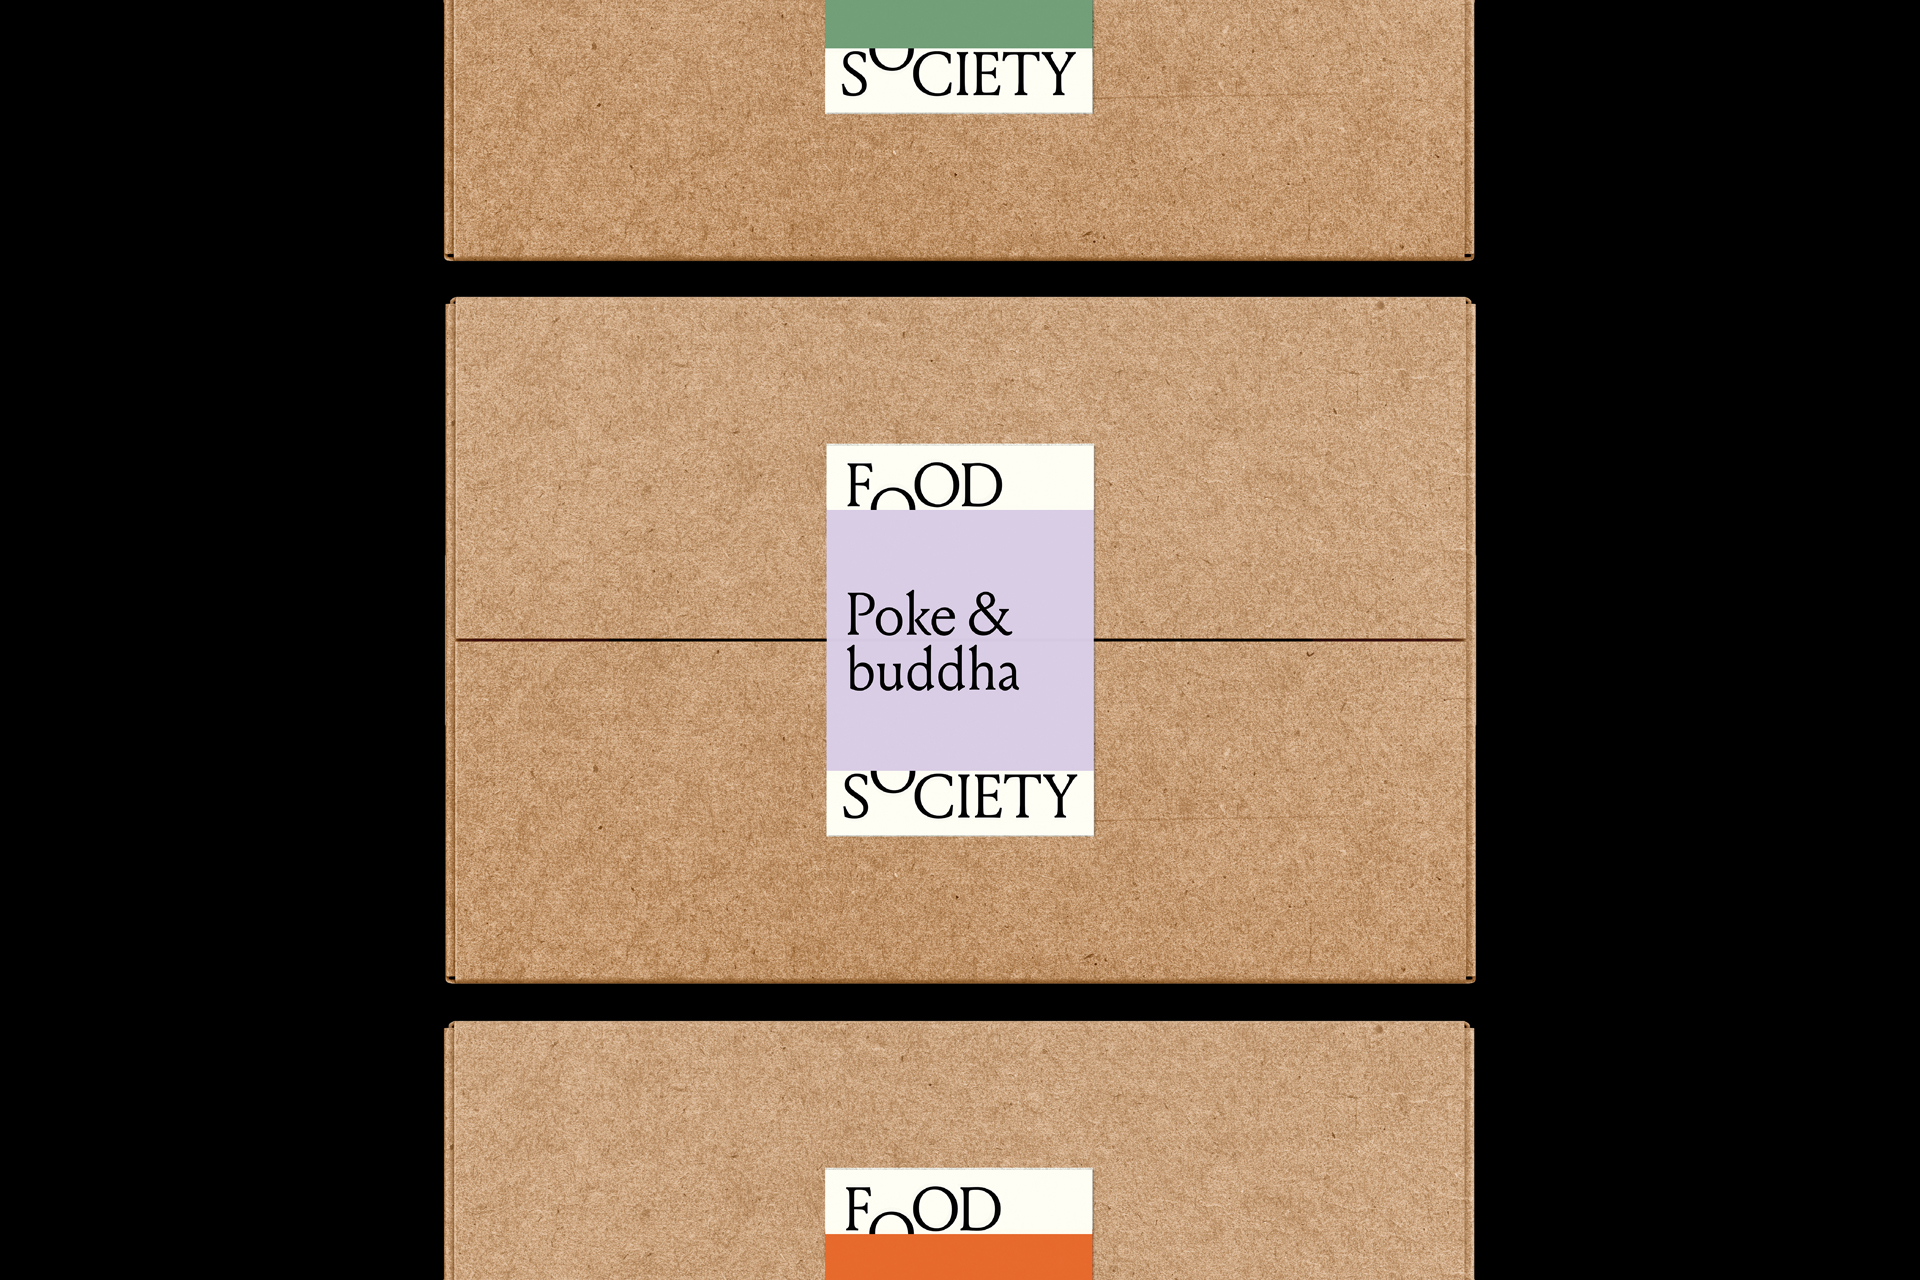 FoodSociety_BoxesStickers